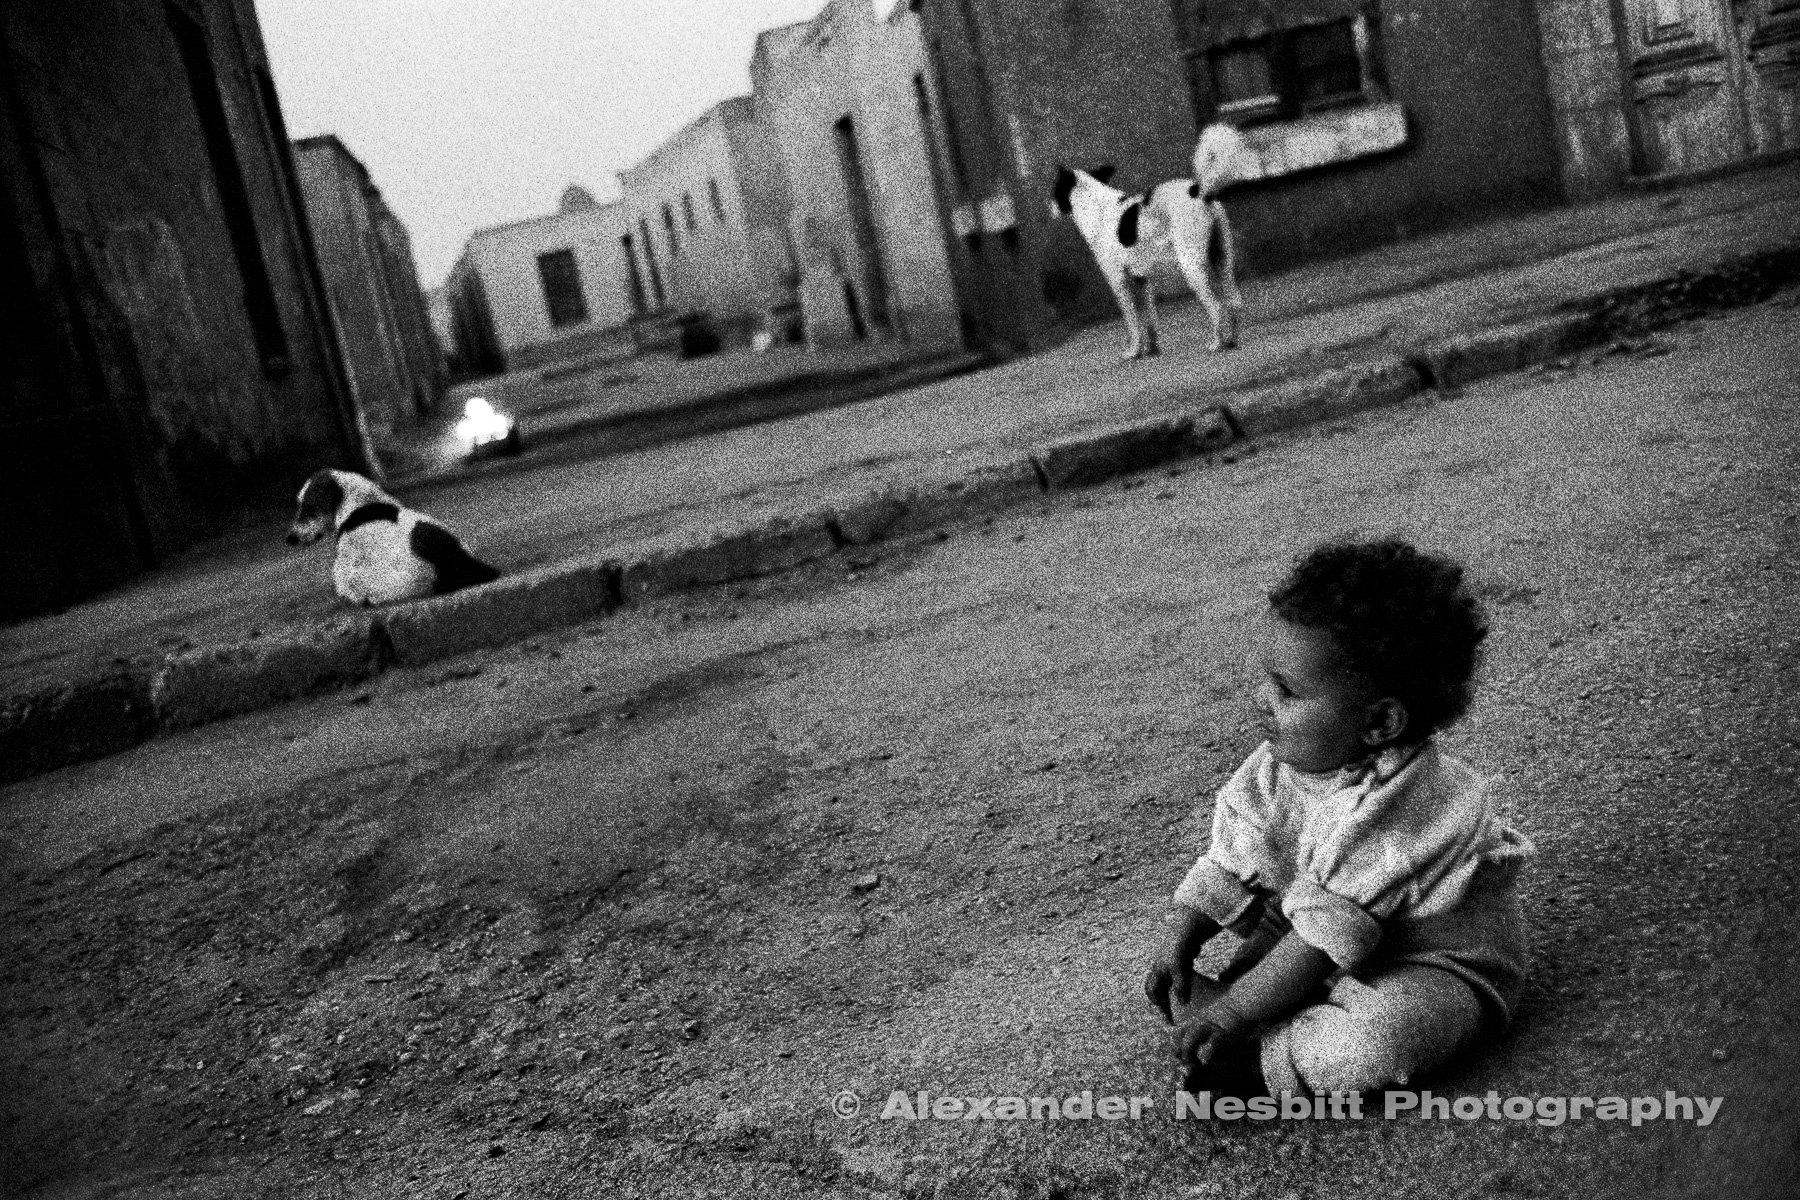 City of the Dead, Cairo  - A baby plays on the quiet streets of the cemetery.  With lost of open space and little traffic it often presents a desirable alternative to other Cairo neighborhoods.